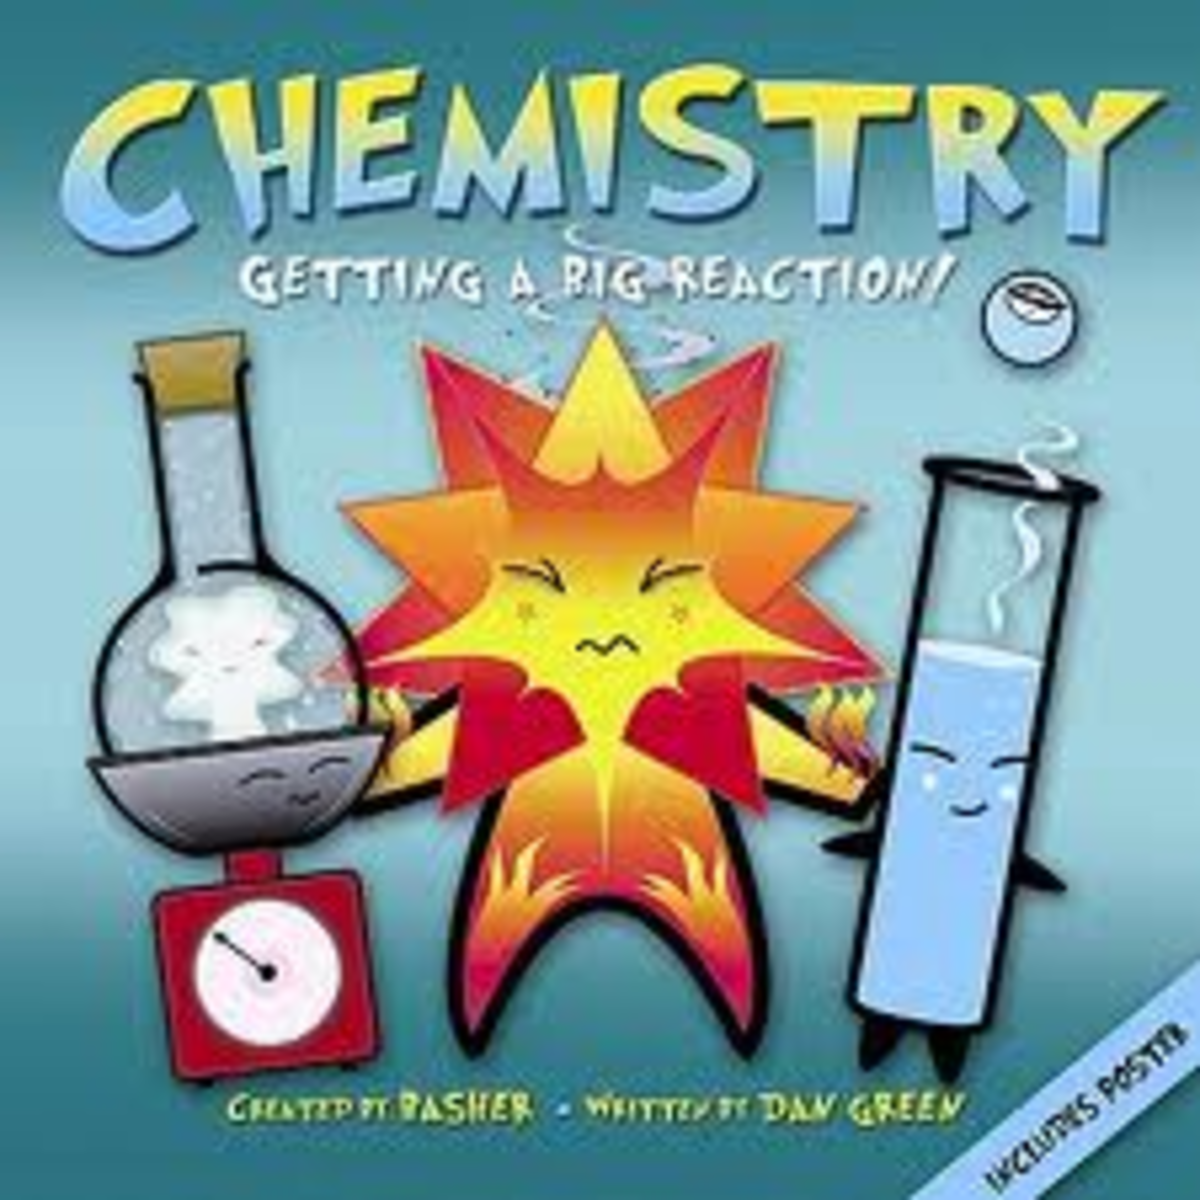 The Basher series has several fun science books for kids